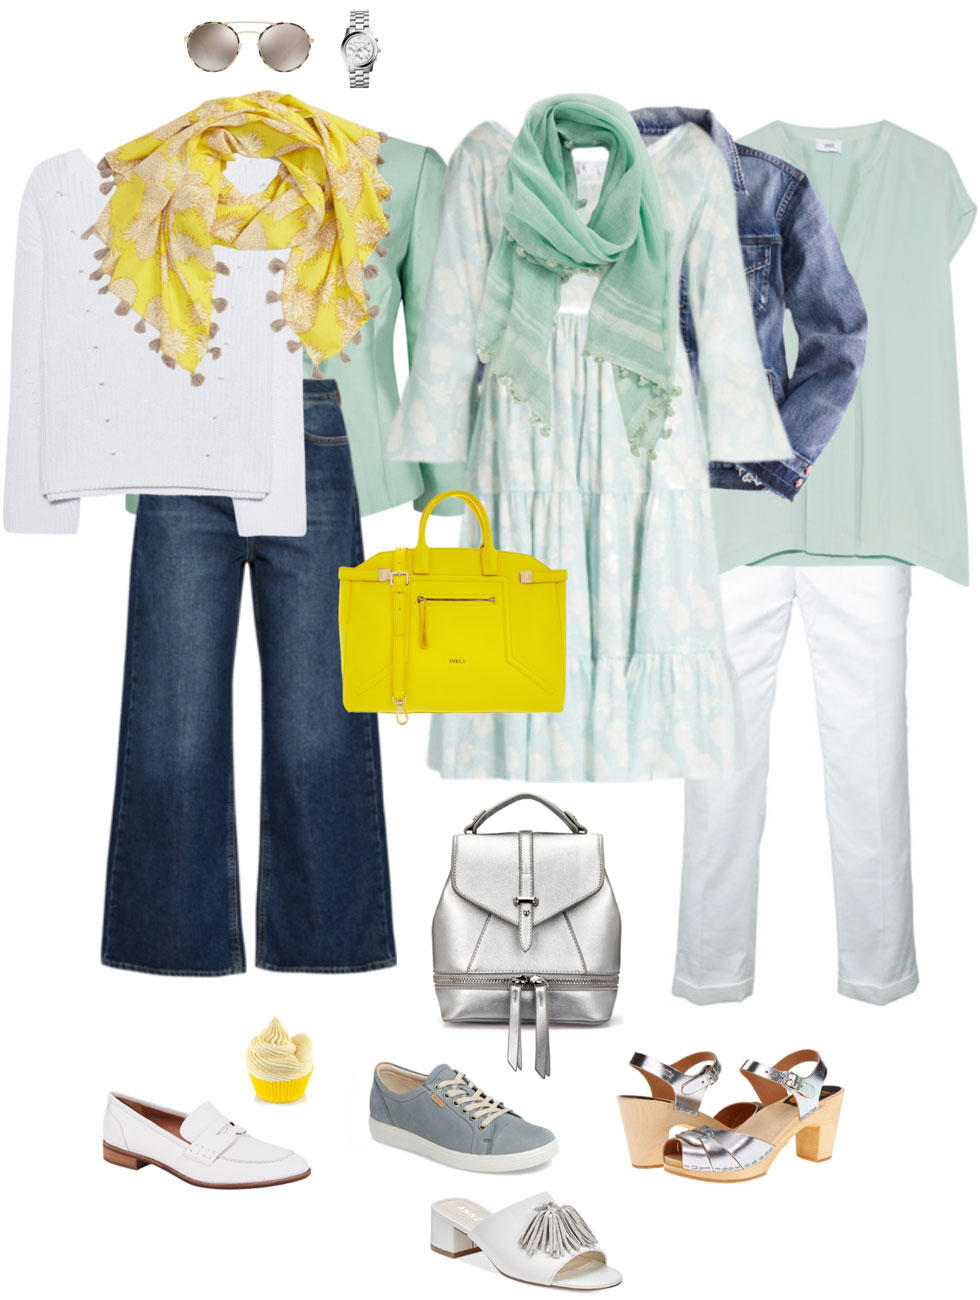 Ensemble: White, Blue, Seafoam & Citron